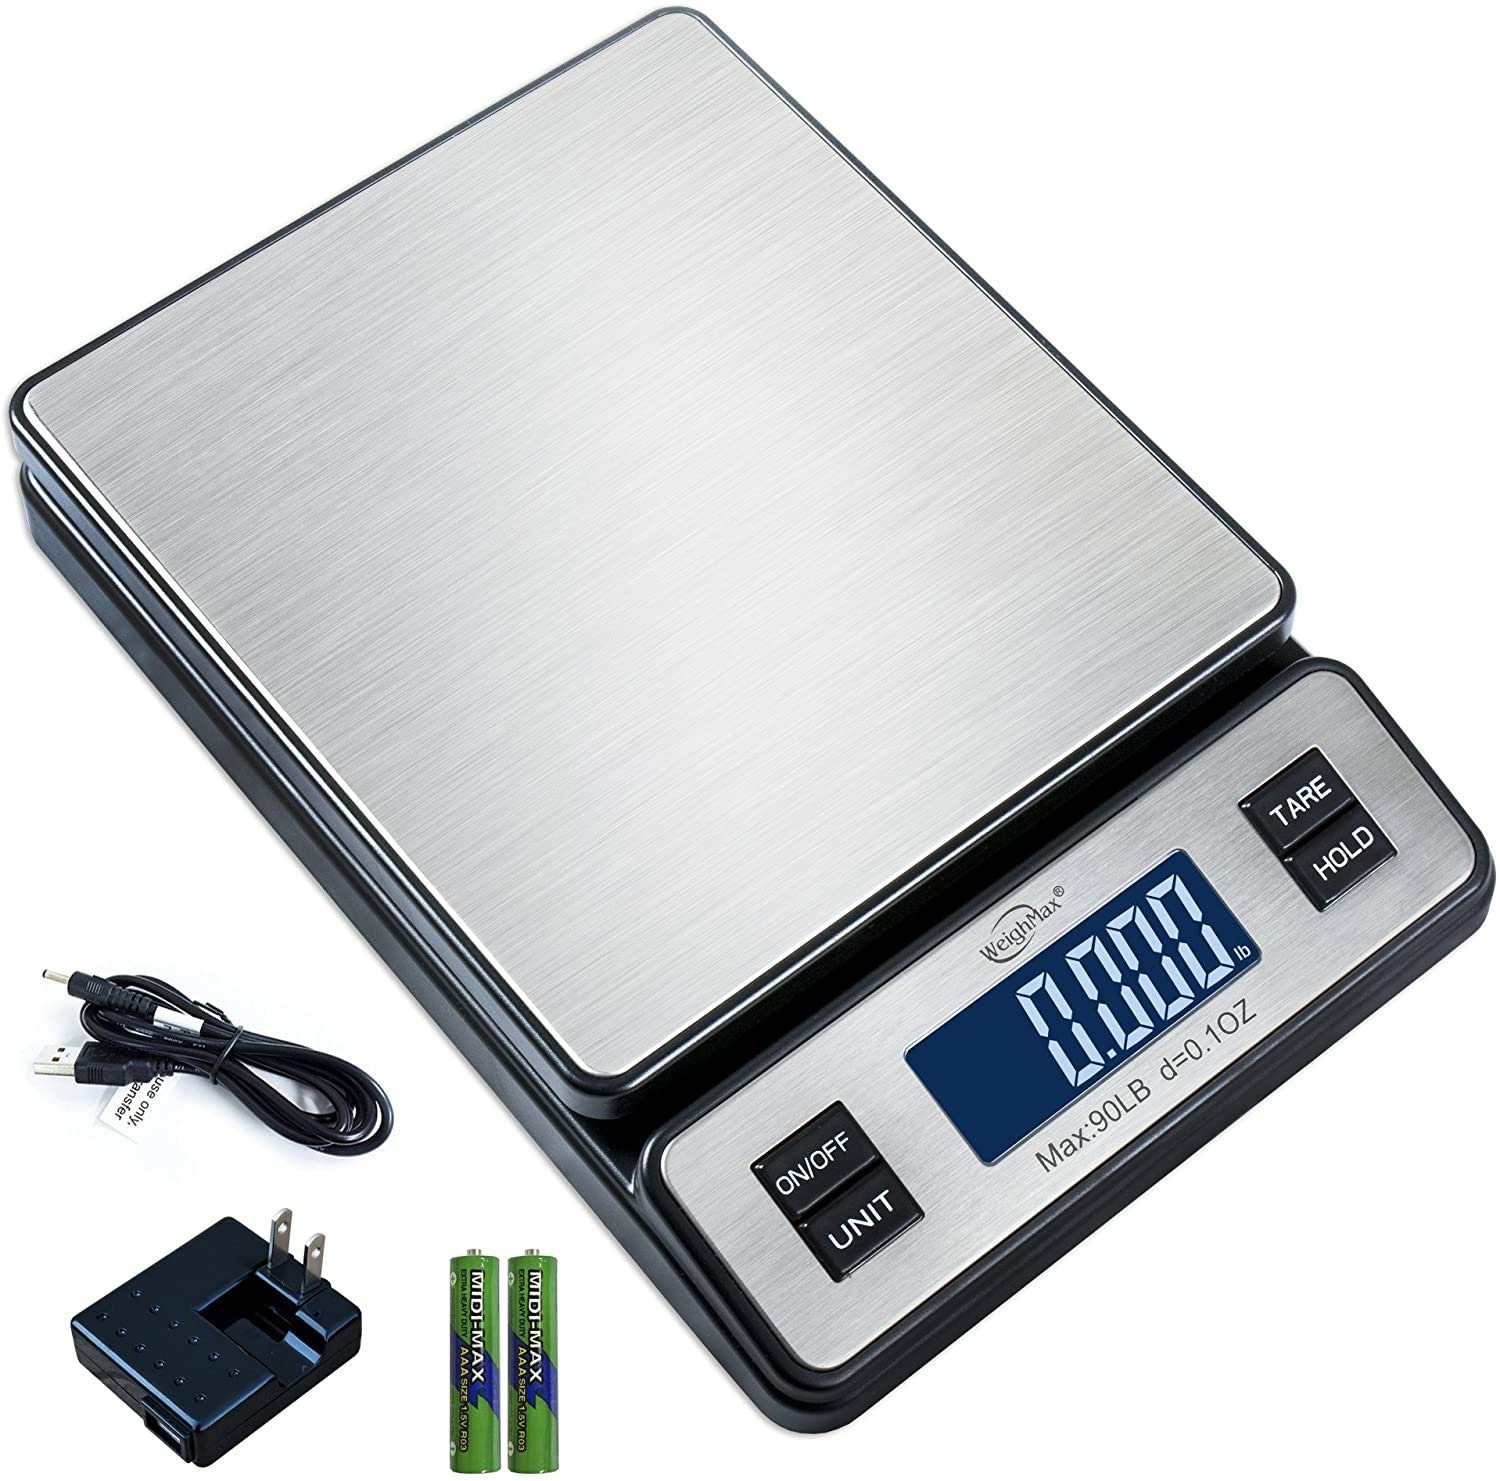 Weighmax Digital Shipping Scale